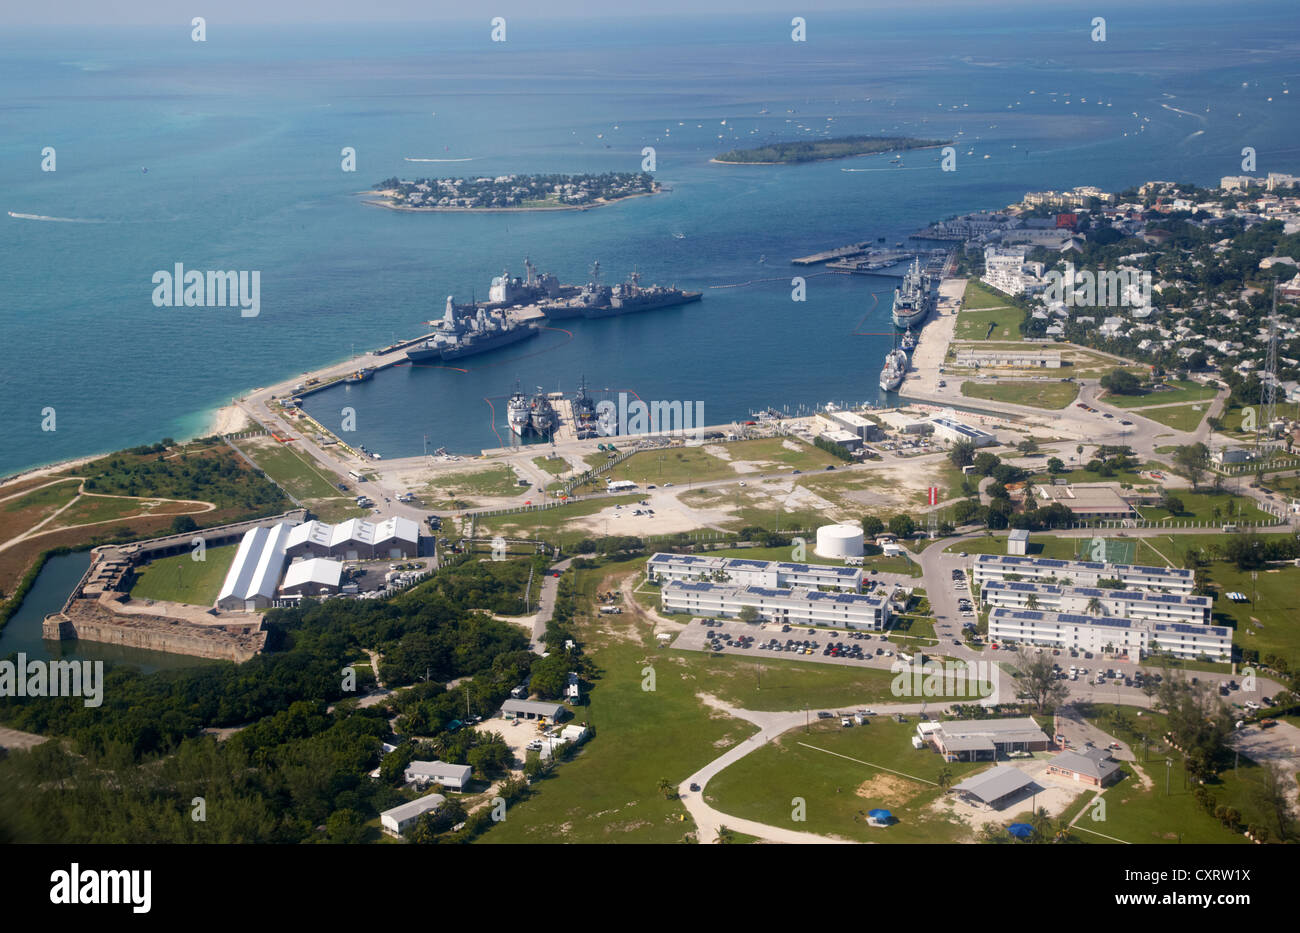 aerial view of nas key west naval air station base truman annex florida keys usa - Stock Image